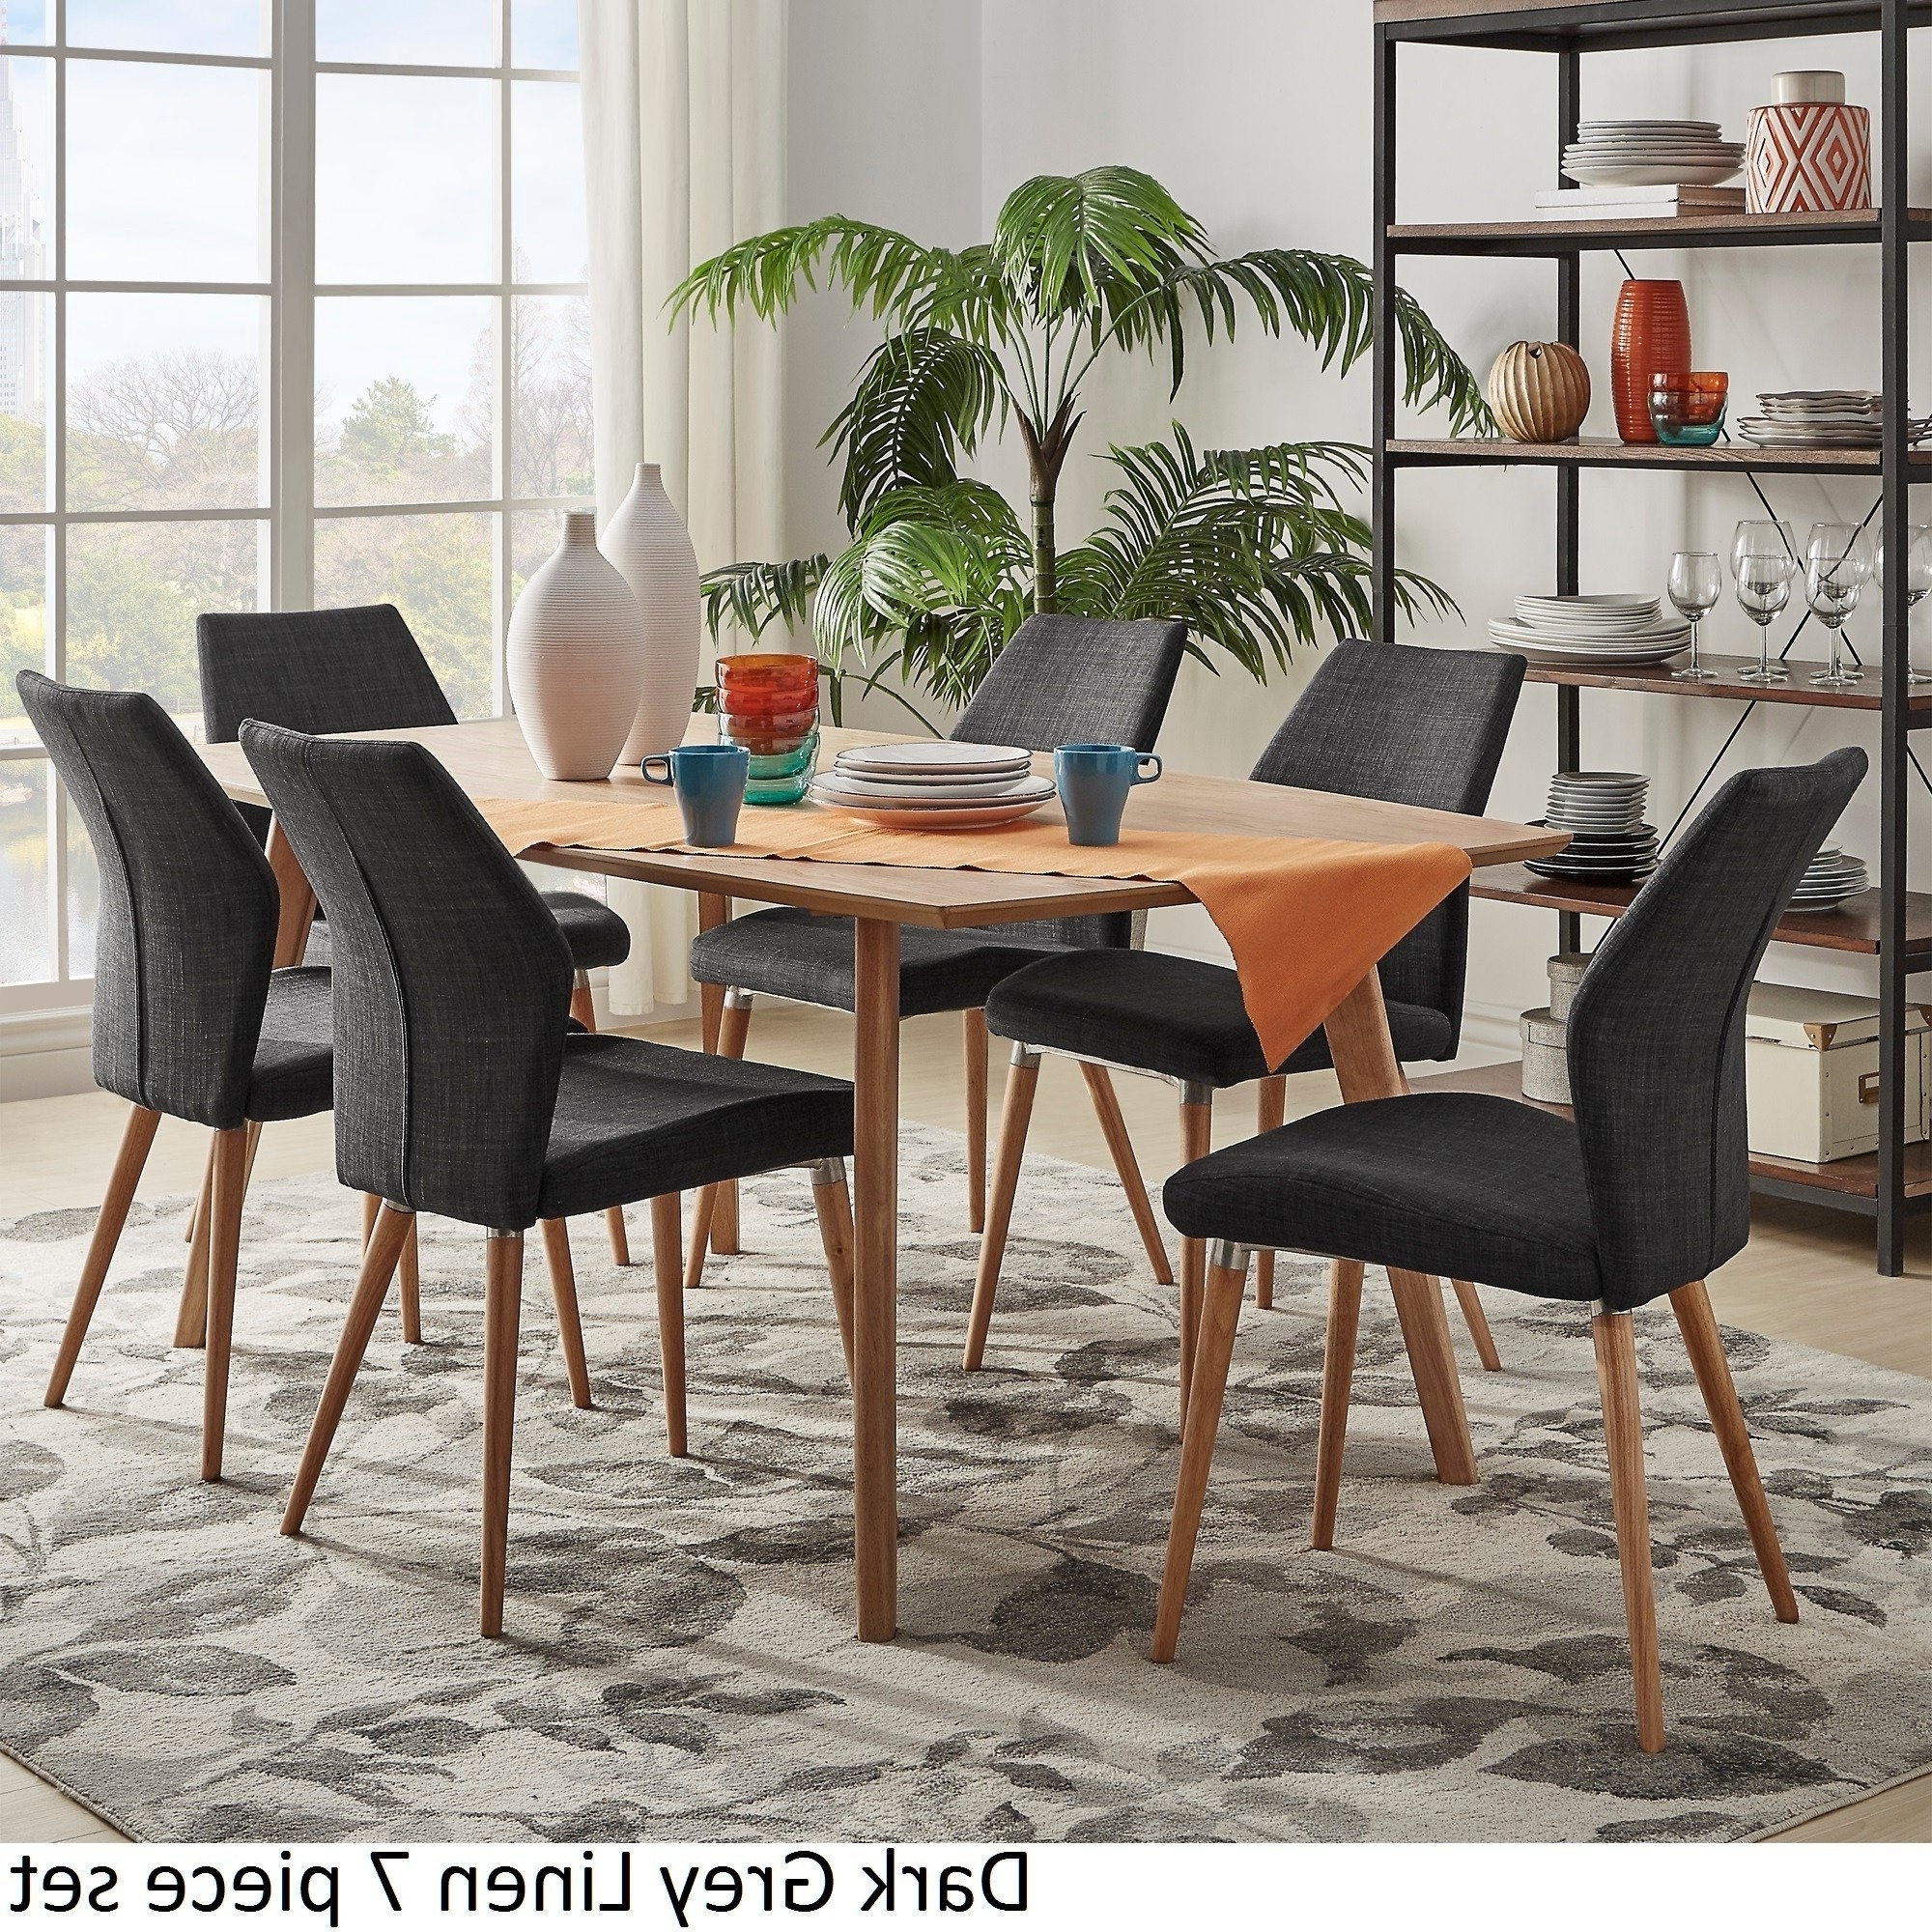 Caira Black 5 Piece Round Dining Sets With Upholstered Side Chairs With Regard To Latest Shop Abelone Scandinavian Oak Dining Set Inspire Q Modern – On Sale (View 18 of 25)